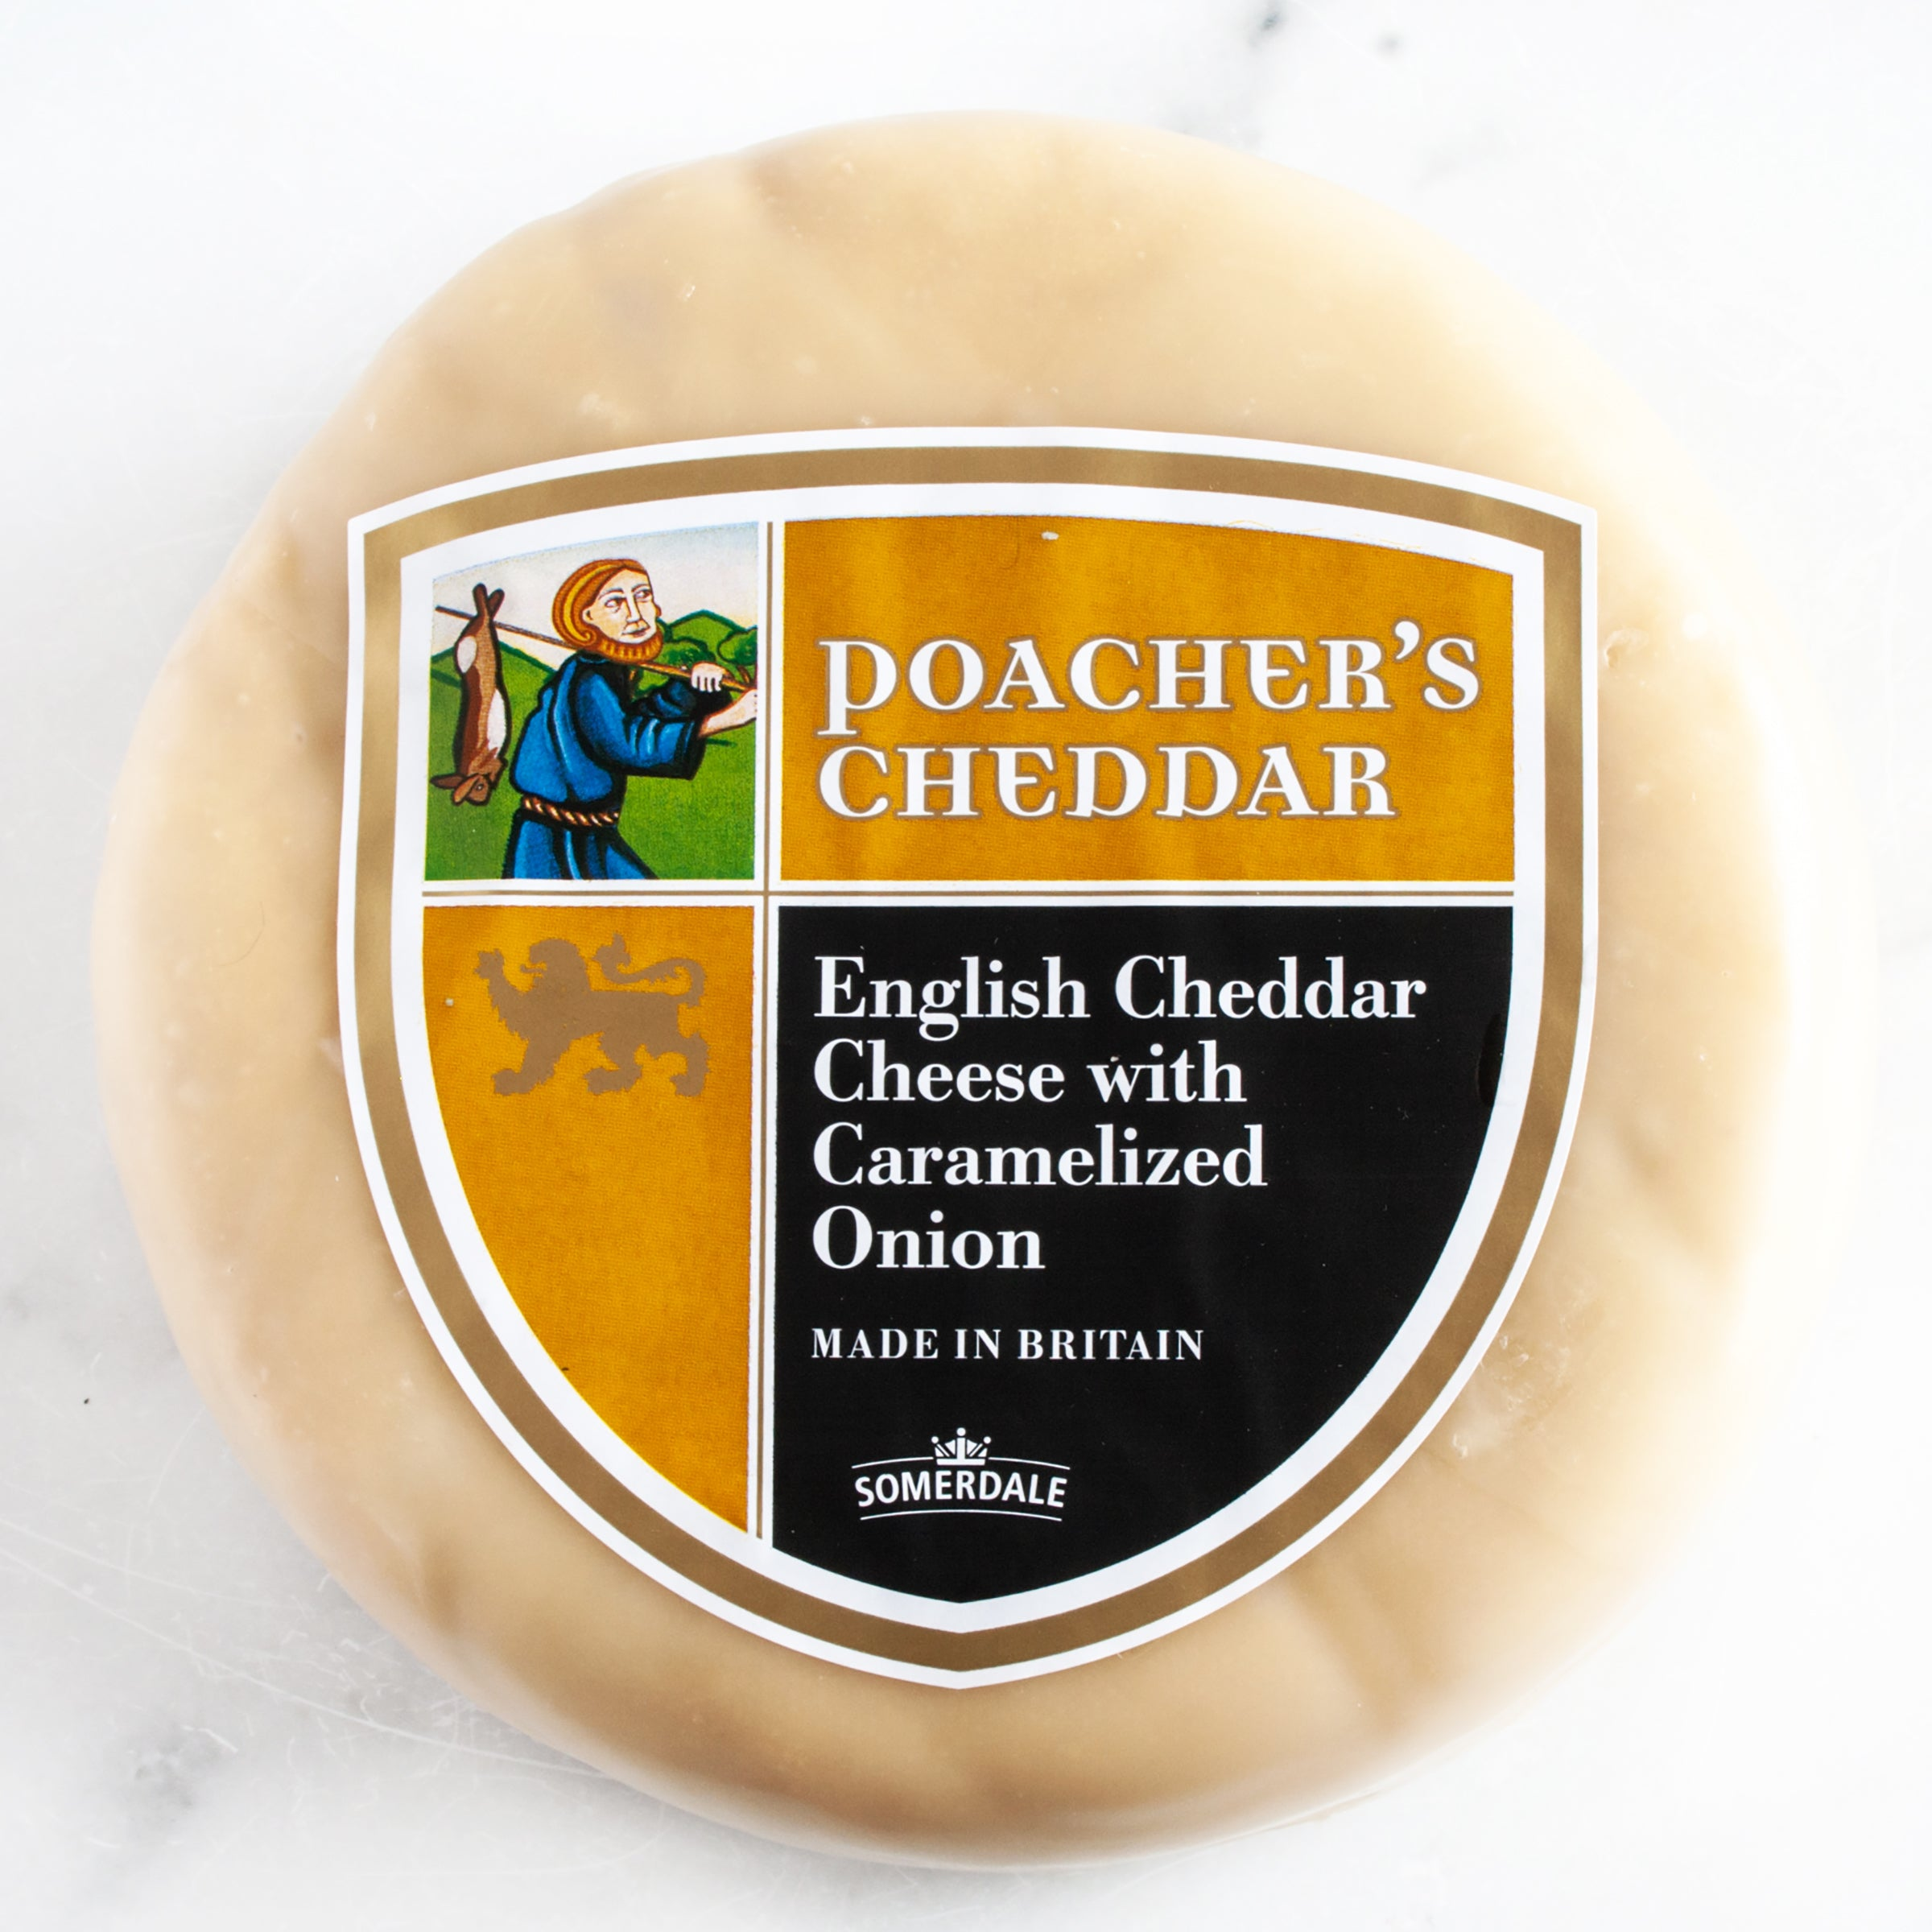 Poacher's Cheddar Cheese with Caramelized Onions_Cut & Wrapped by igourmet_Cheese